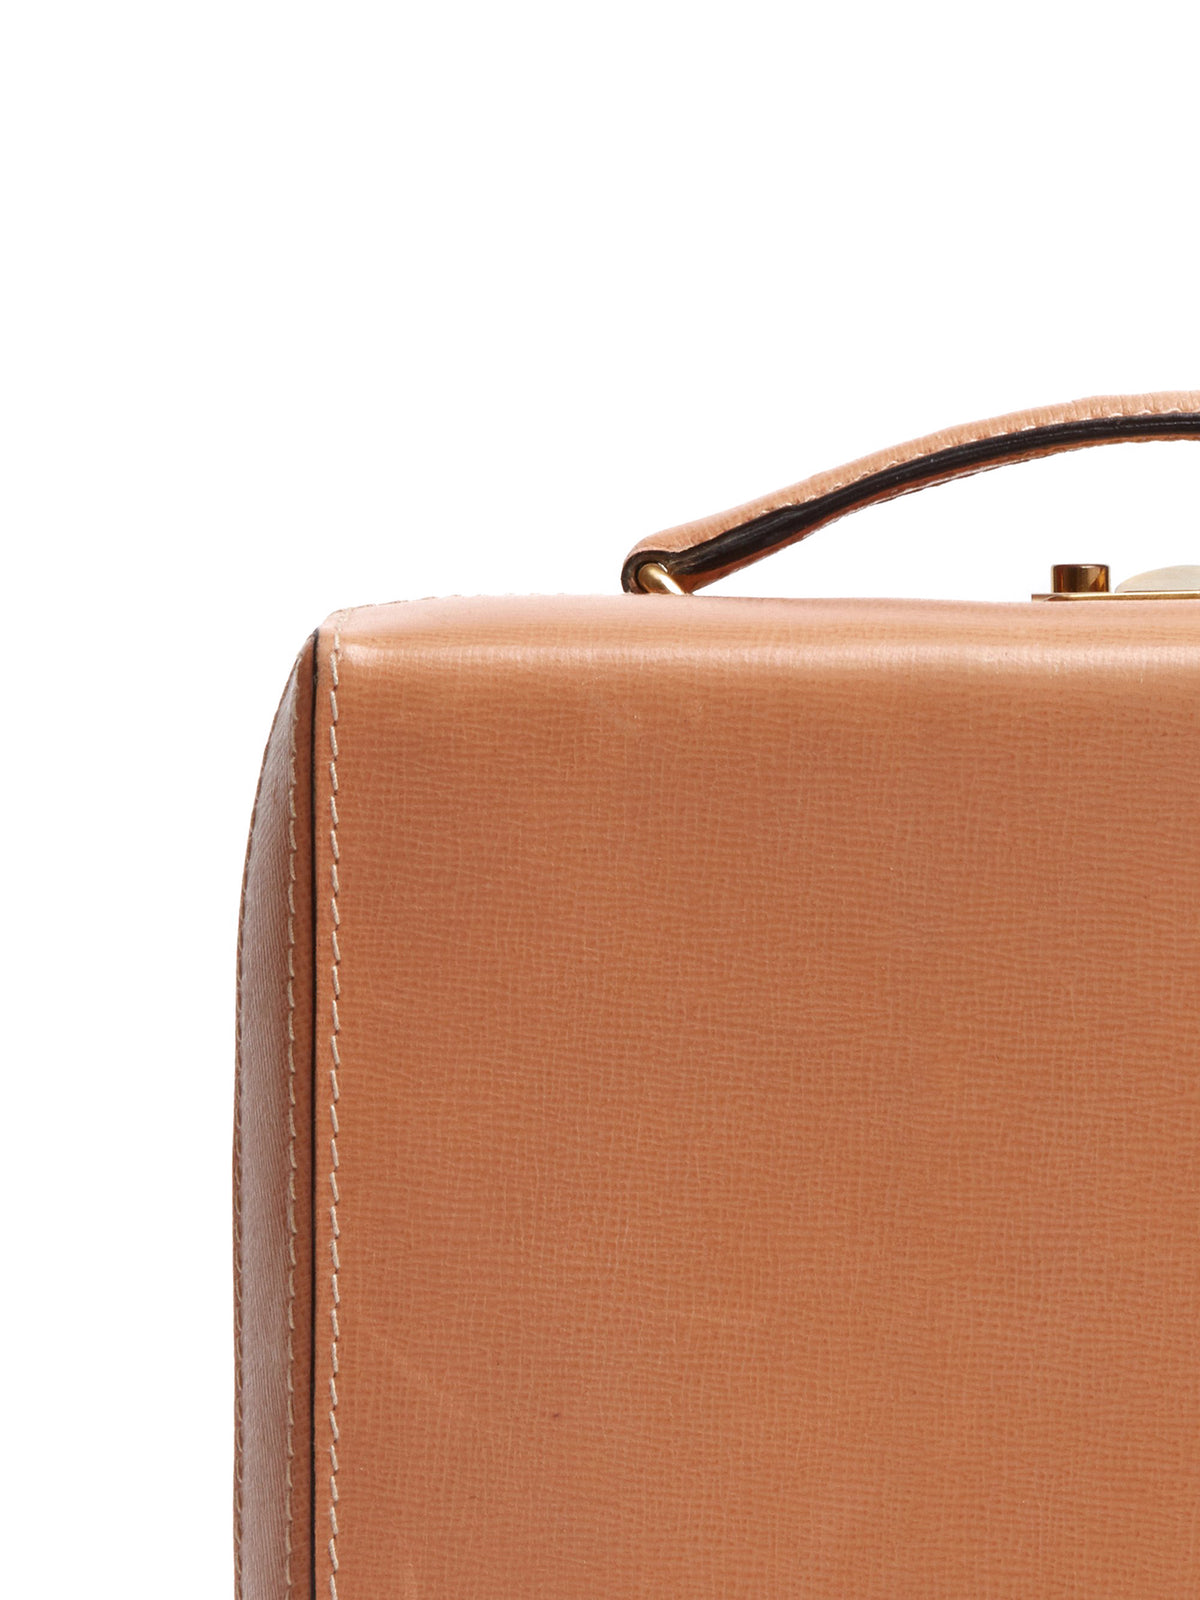 Mark Cross Vintage Grace Leather Box Bag Tan Detail